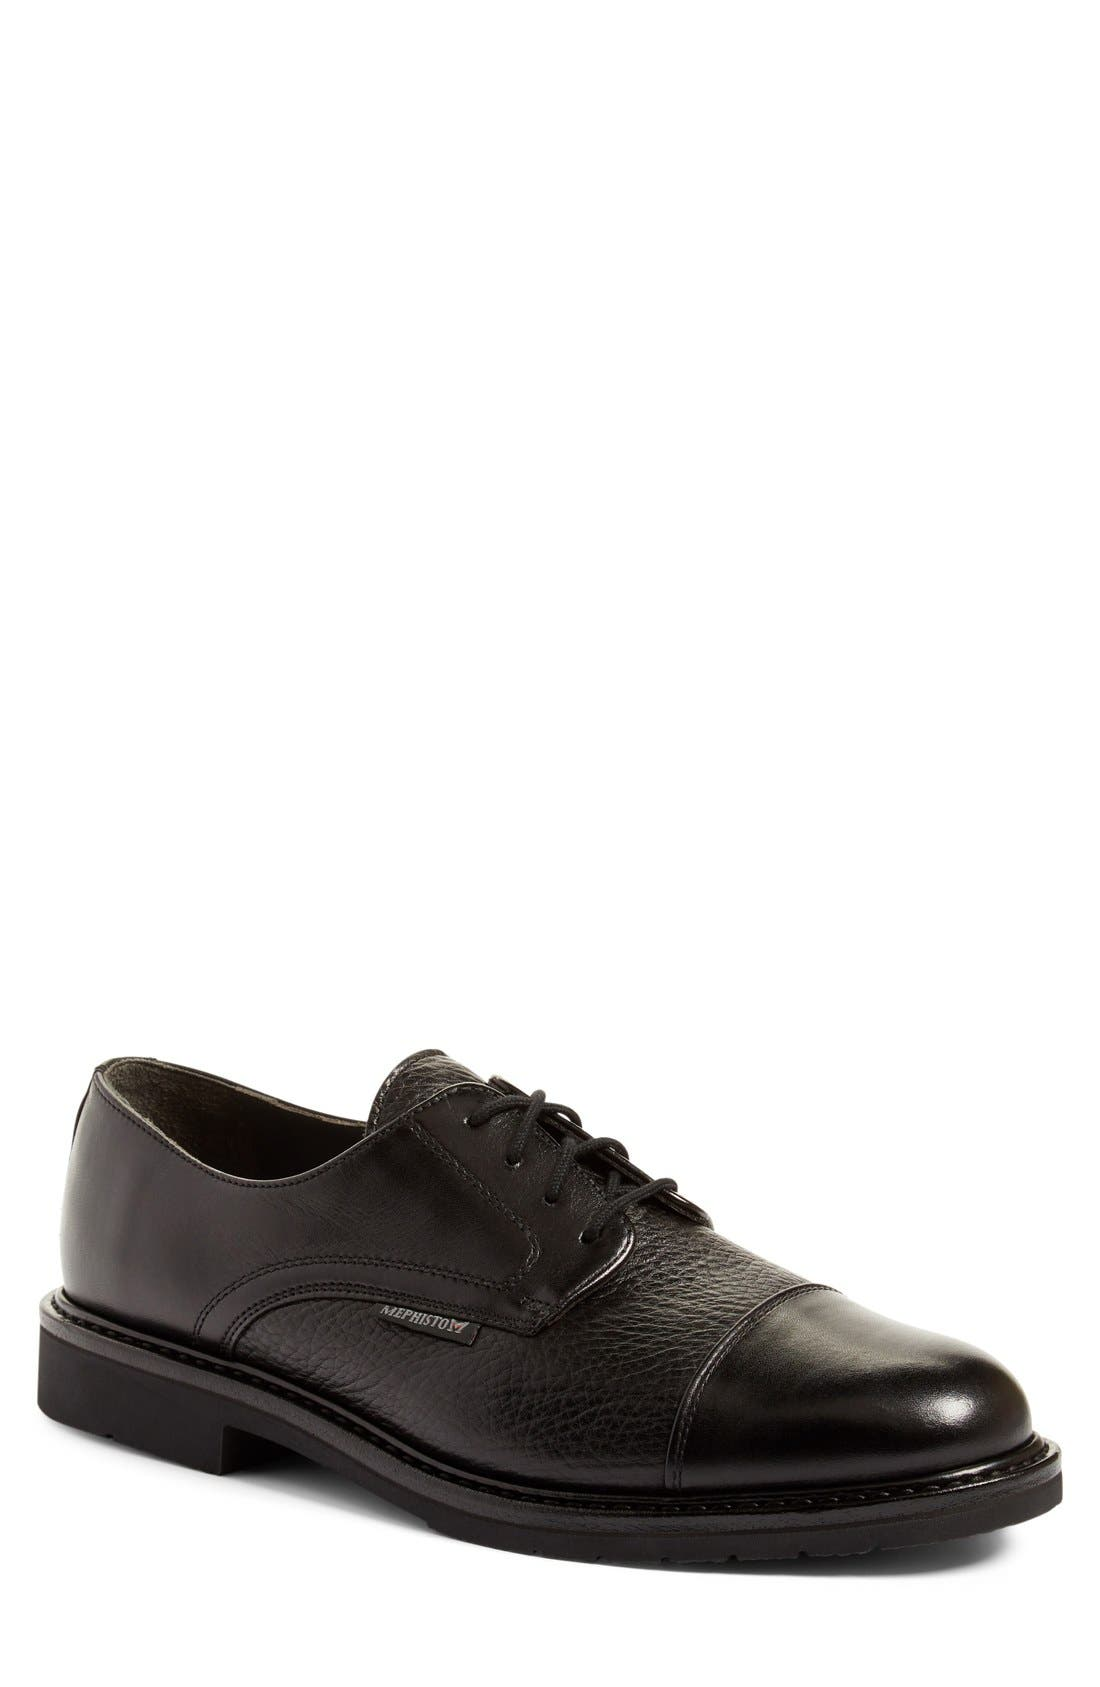 MEPHISTO, 'Melchior' Cap Toe Derby, Main thumbnail 1, color, BLACK LEATHER